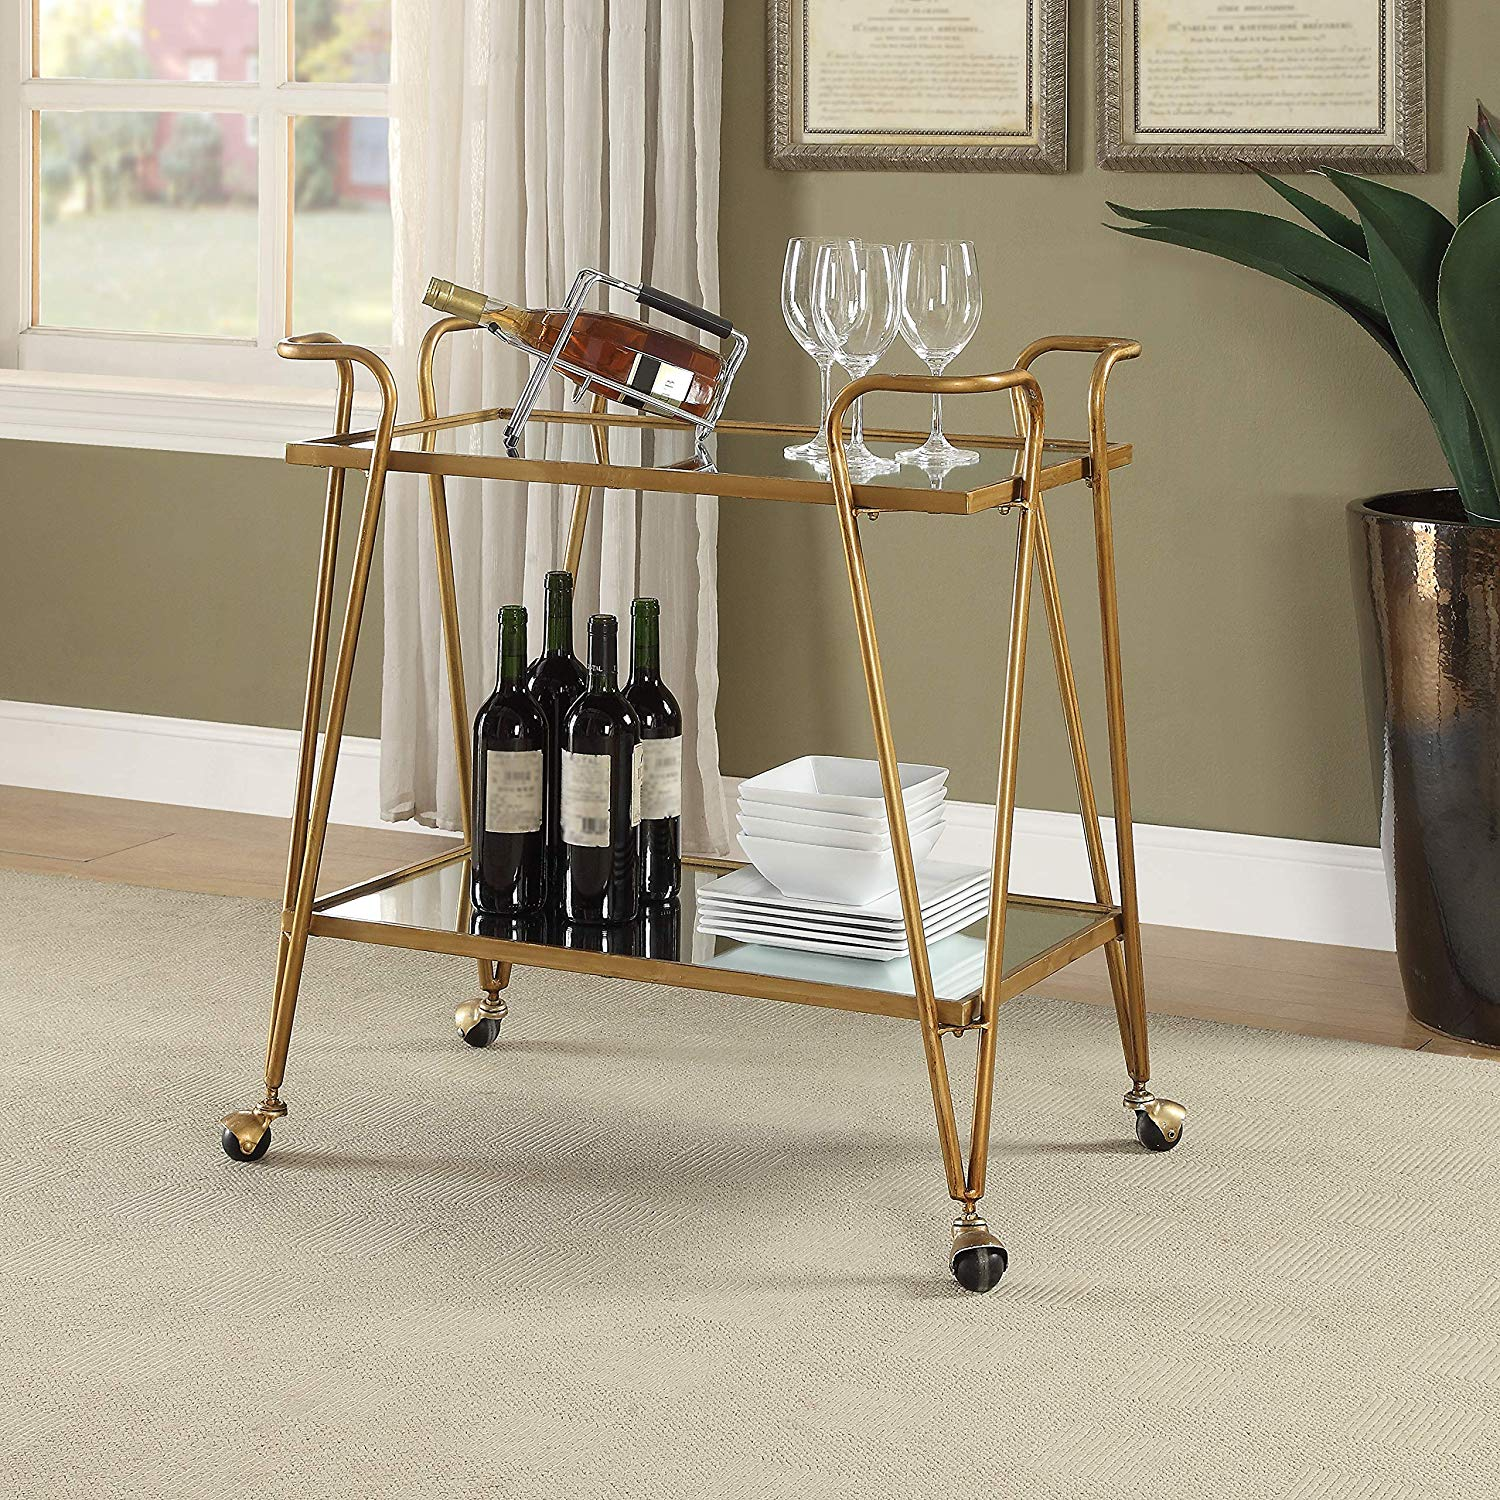 Luxe Bar Carts Under $150 on Amazon | STYLECASTER